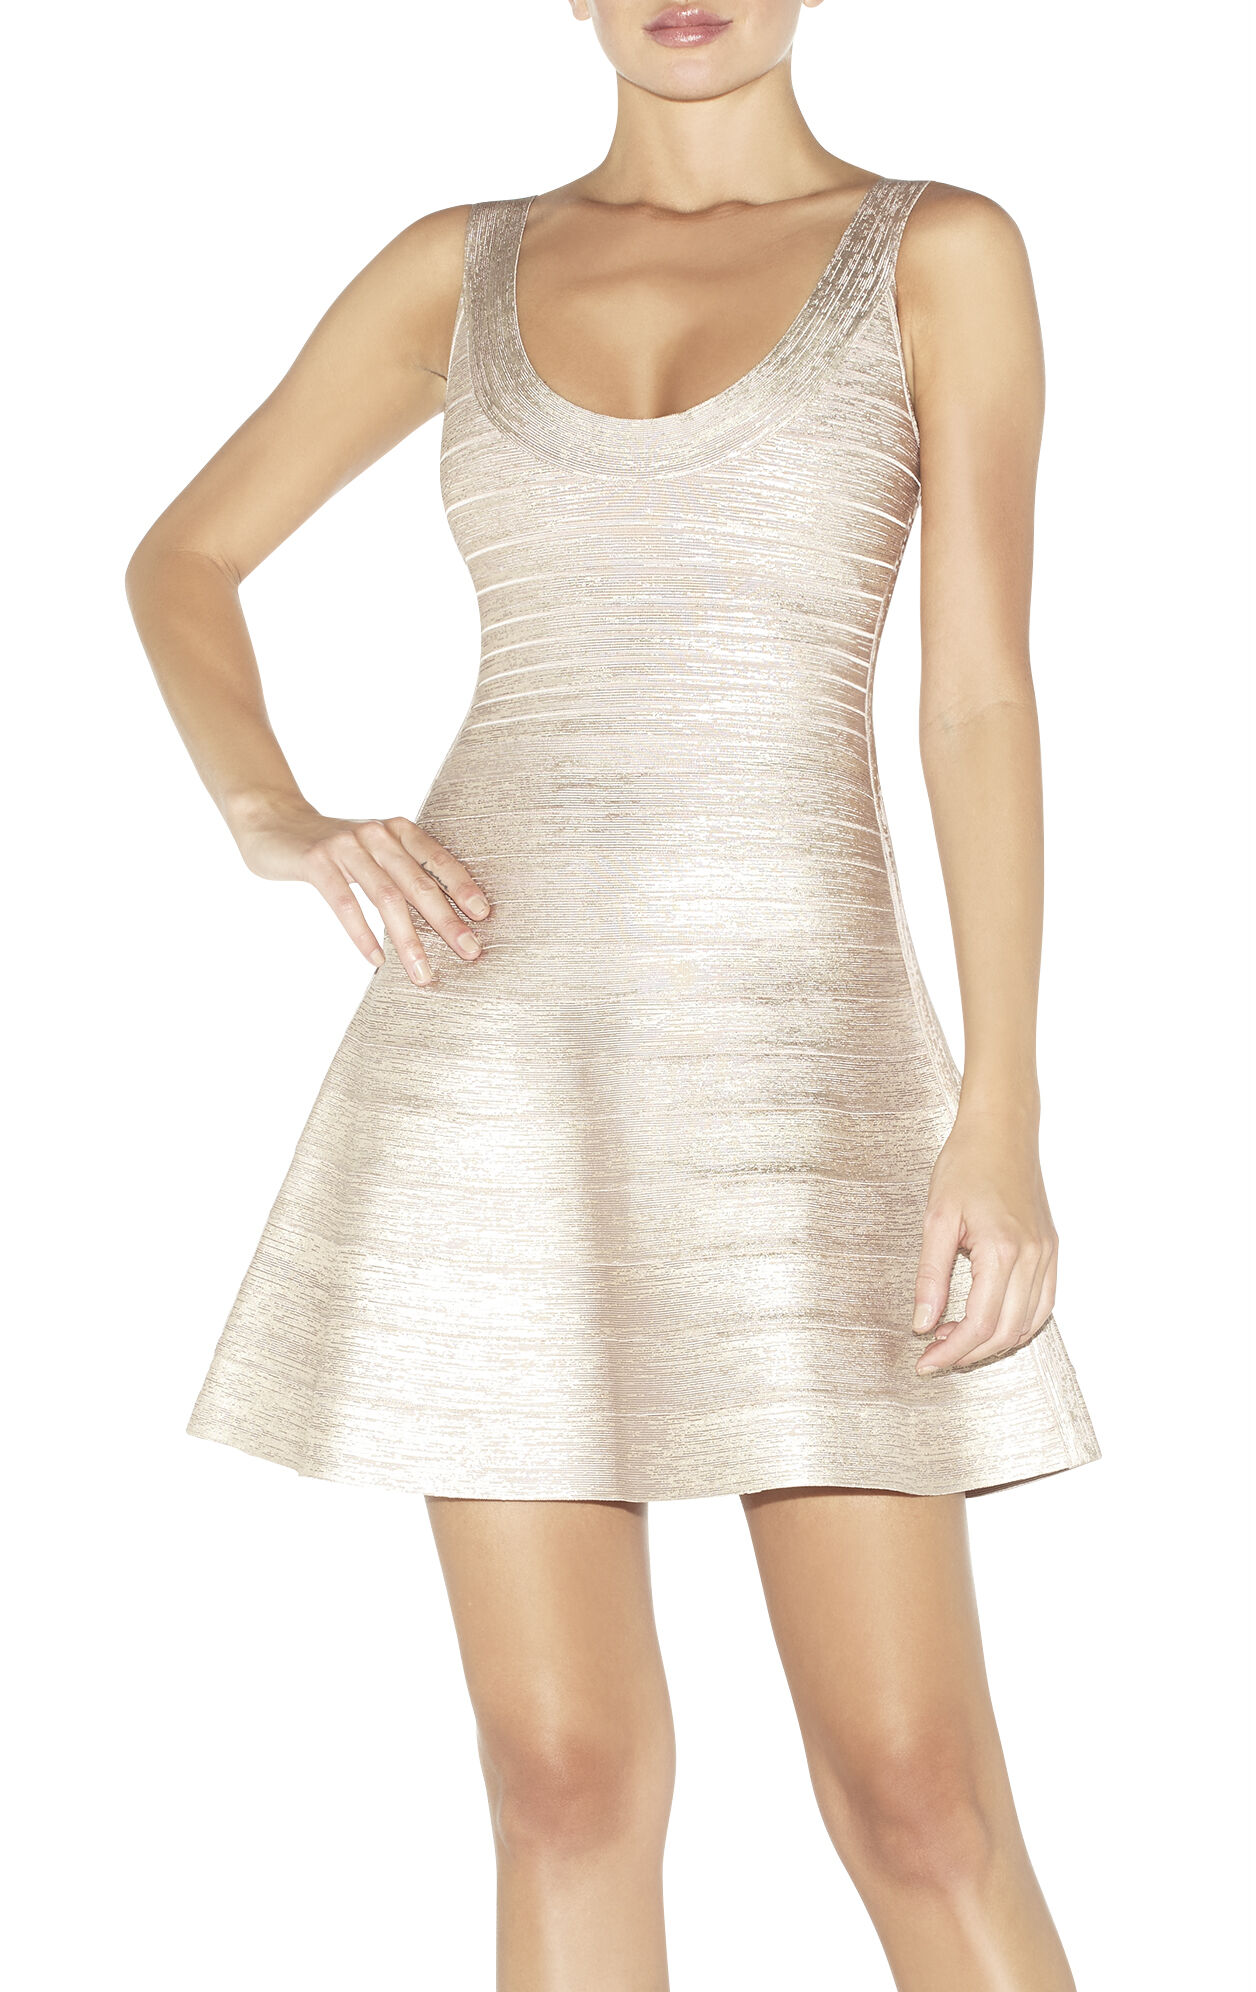 Eva Woodgrain Foil-Print Dress